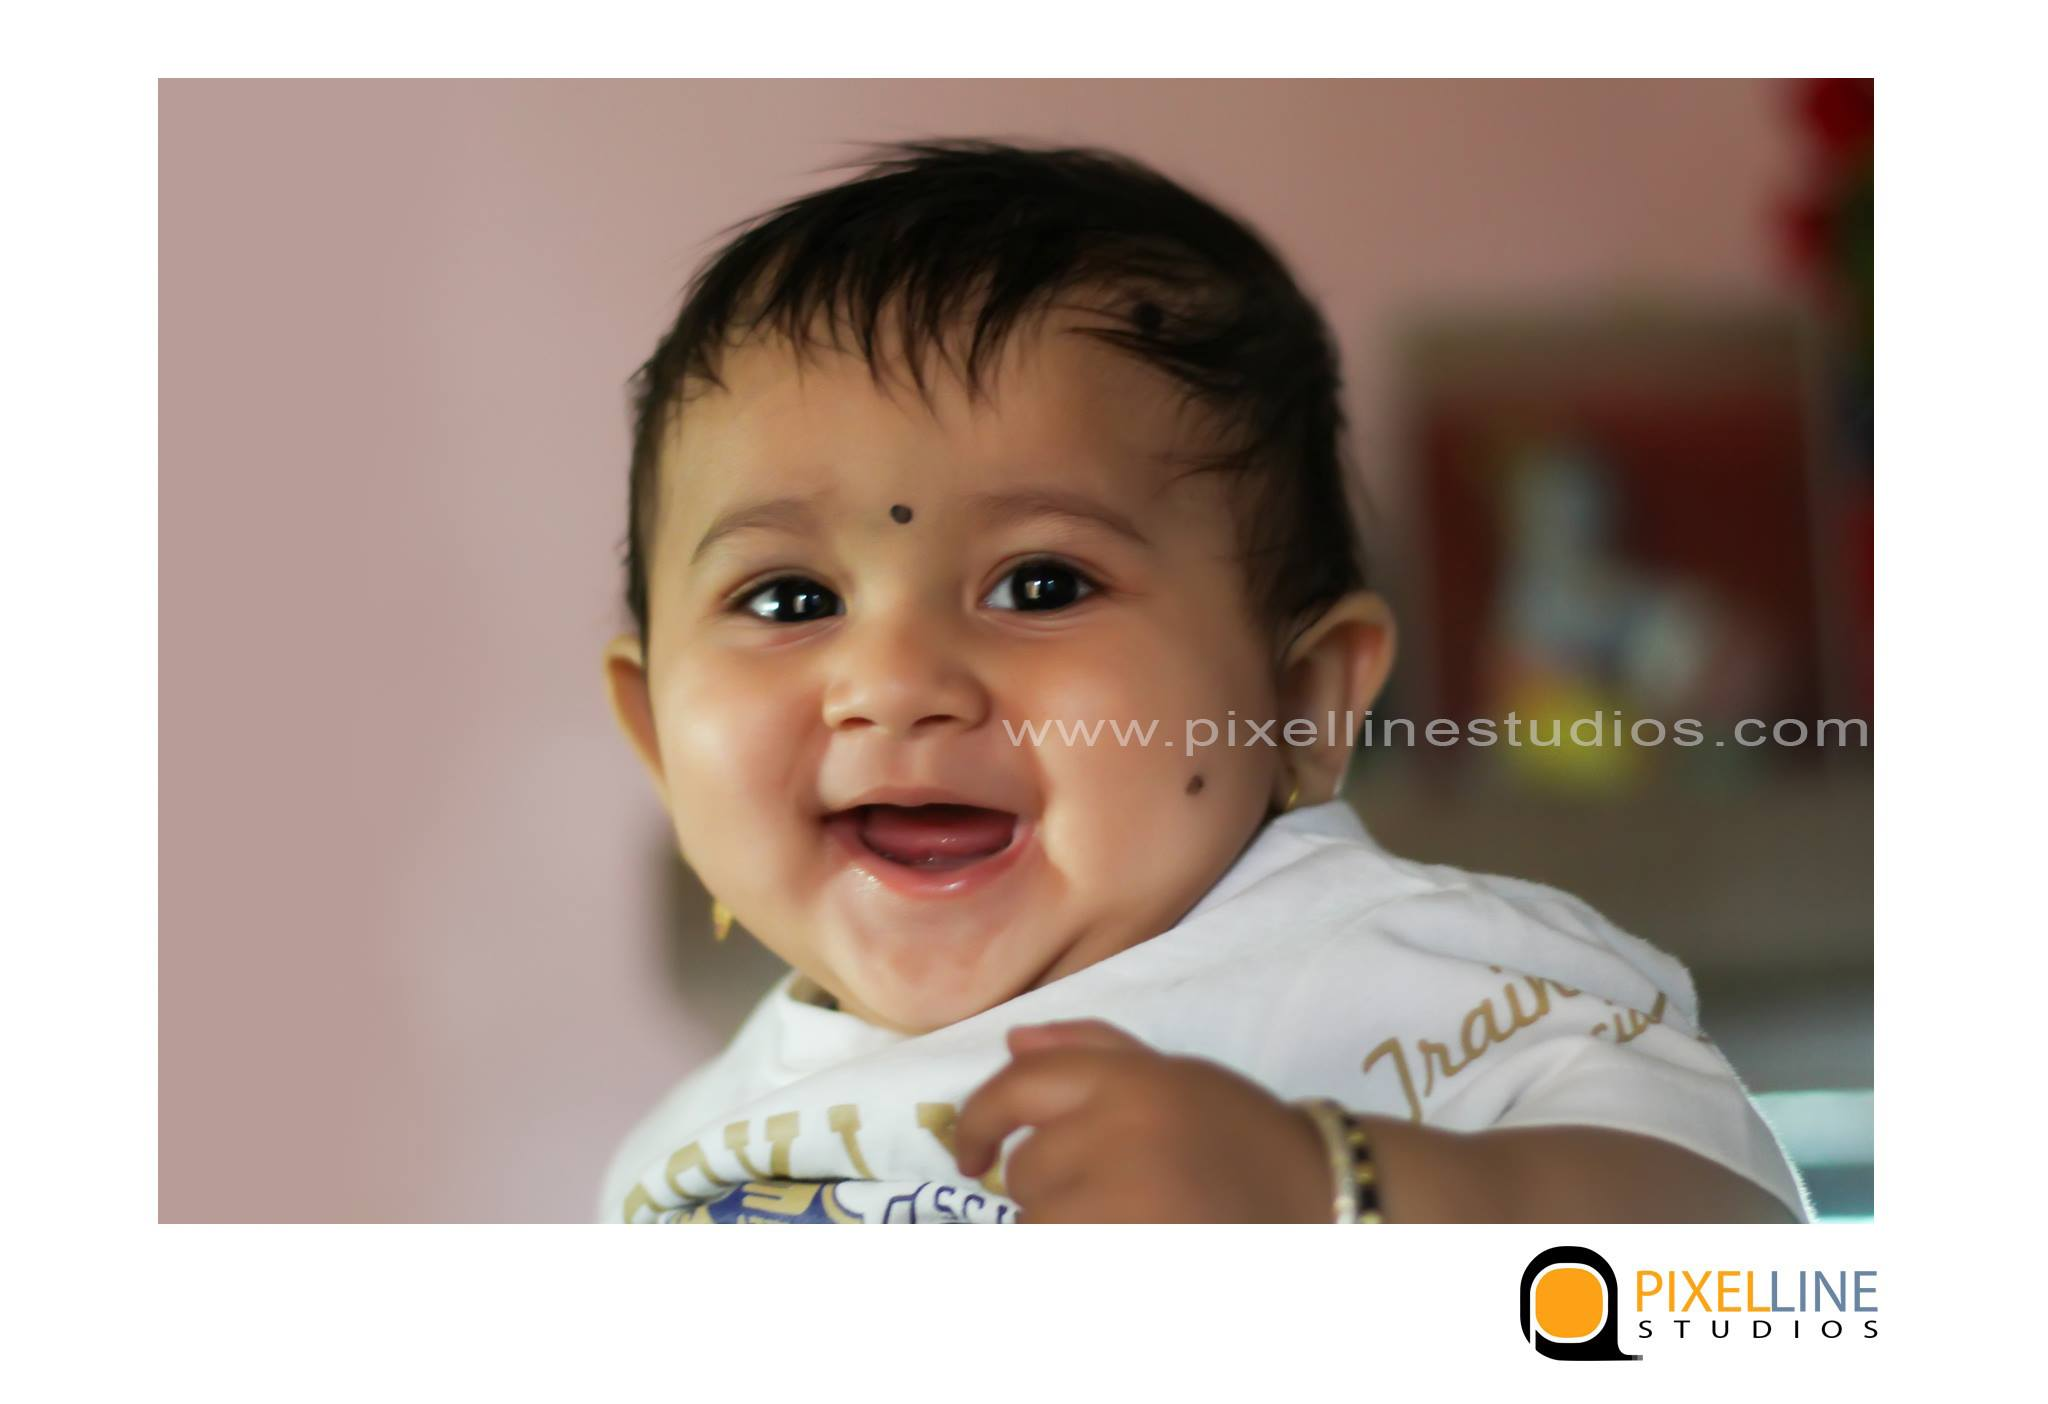 6-month-baby-photoshoot-in-pune_pixellinestudios